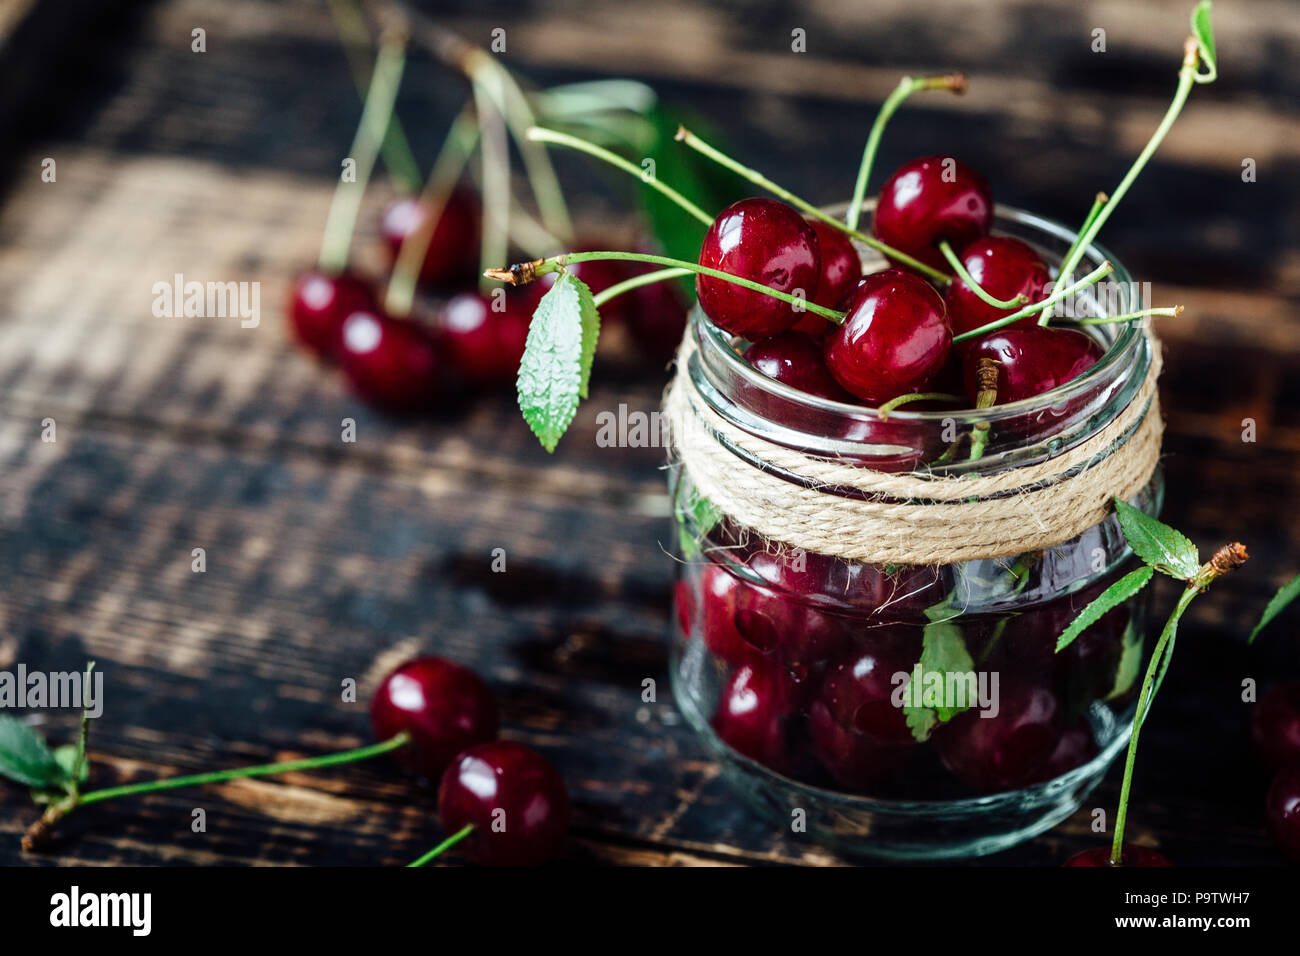 Fresh ripe cherries on a wooden table. Wooden background - Stock Image